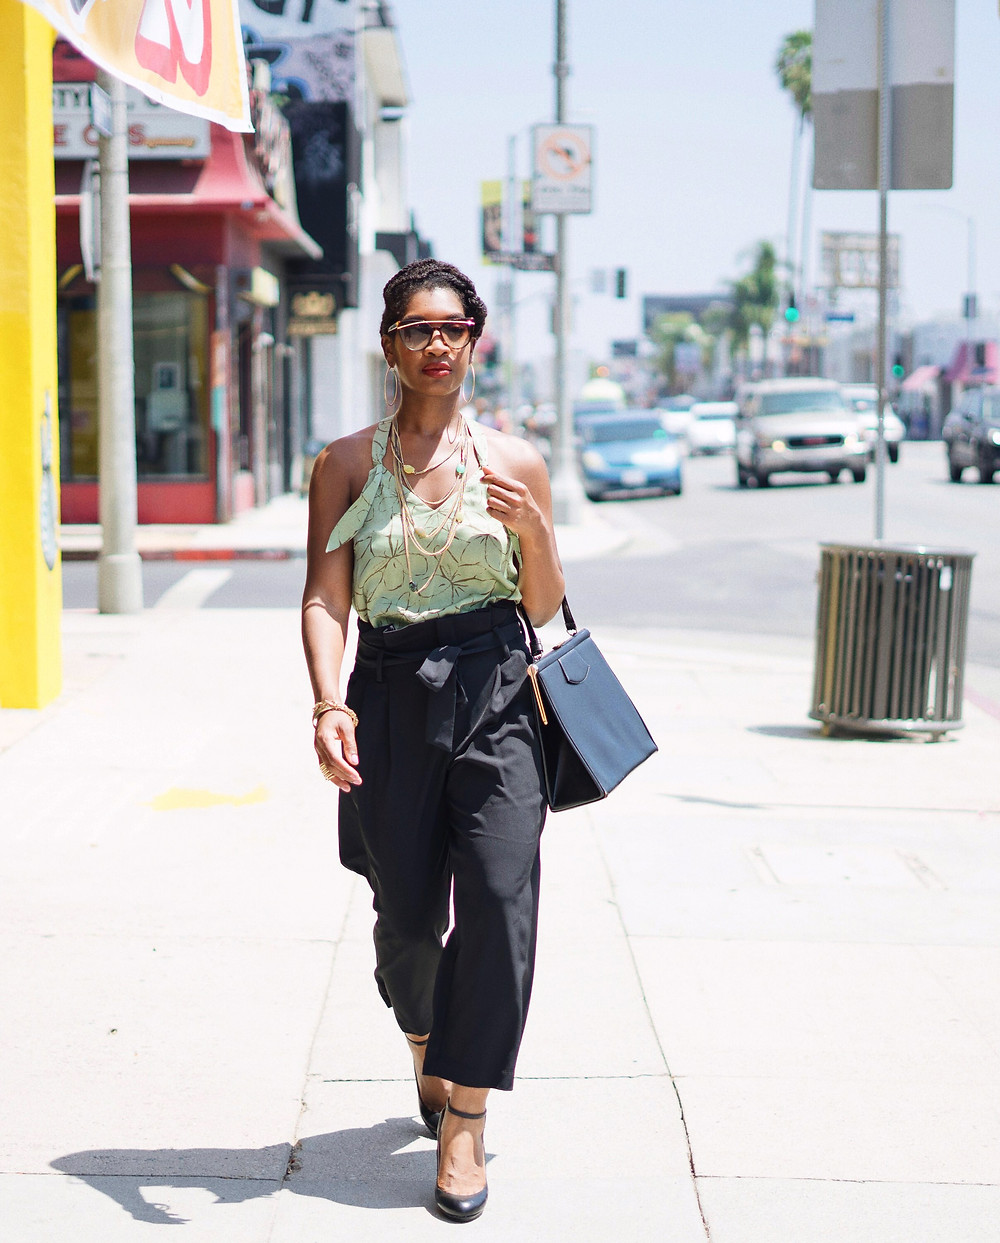 Paperbag Waist Pants on black fashion blogger. How to style paperbag waist pants.